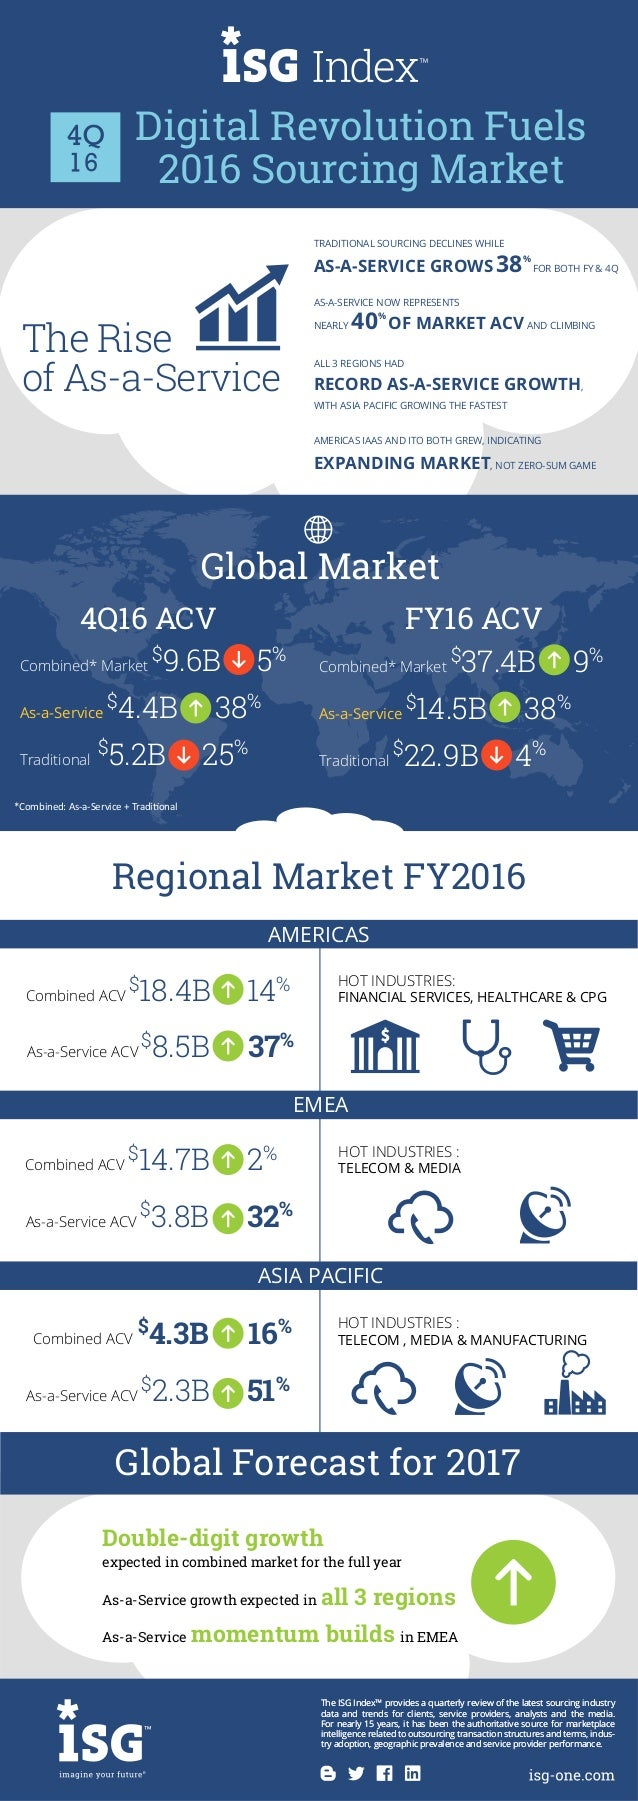 As-a-Service ACV $ 3.8B 32% Combined ACV $ 14.7B 2% As-a-Service ACV $ 2.3B 51% As-a-Service ACV $ 8.5B 37% HOT INDUSTRIES...